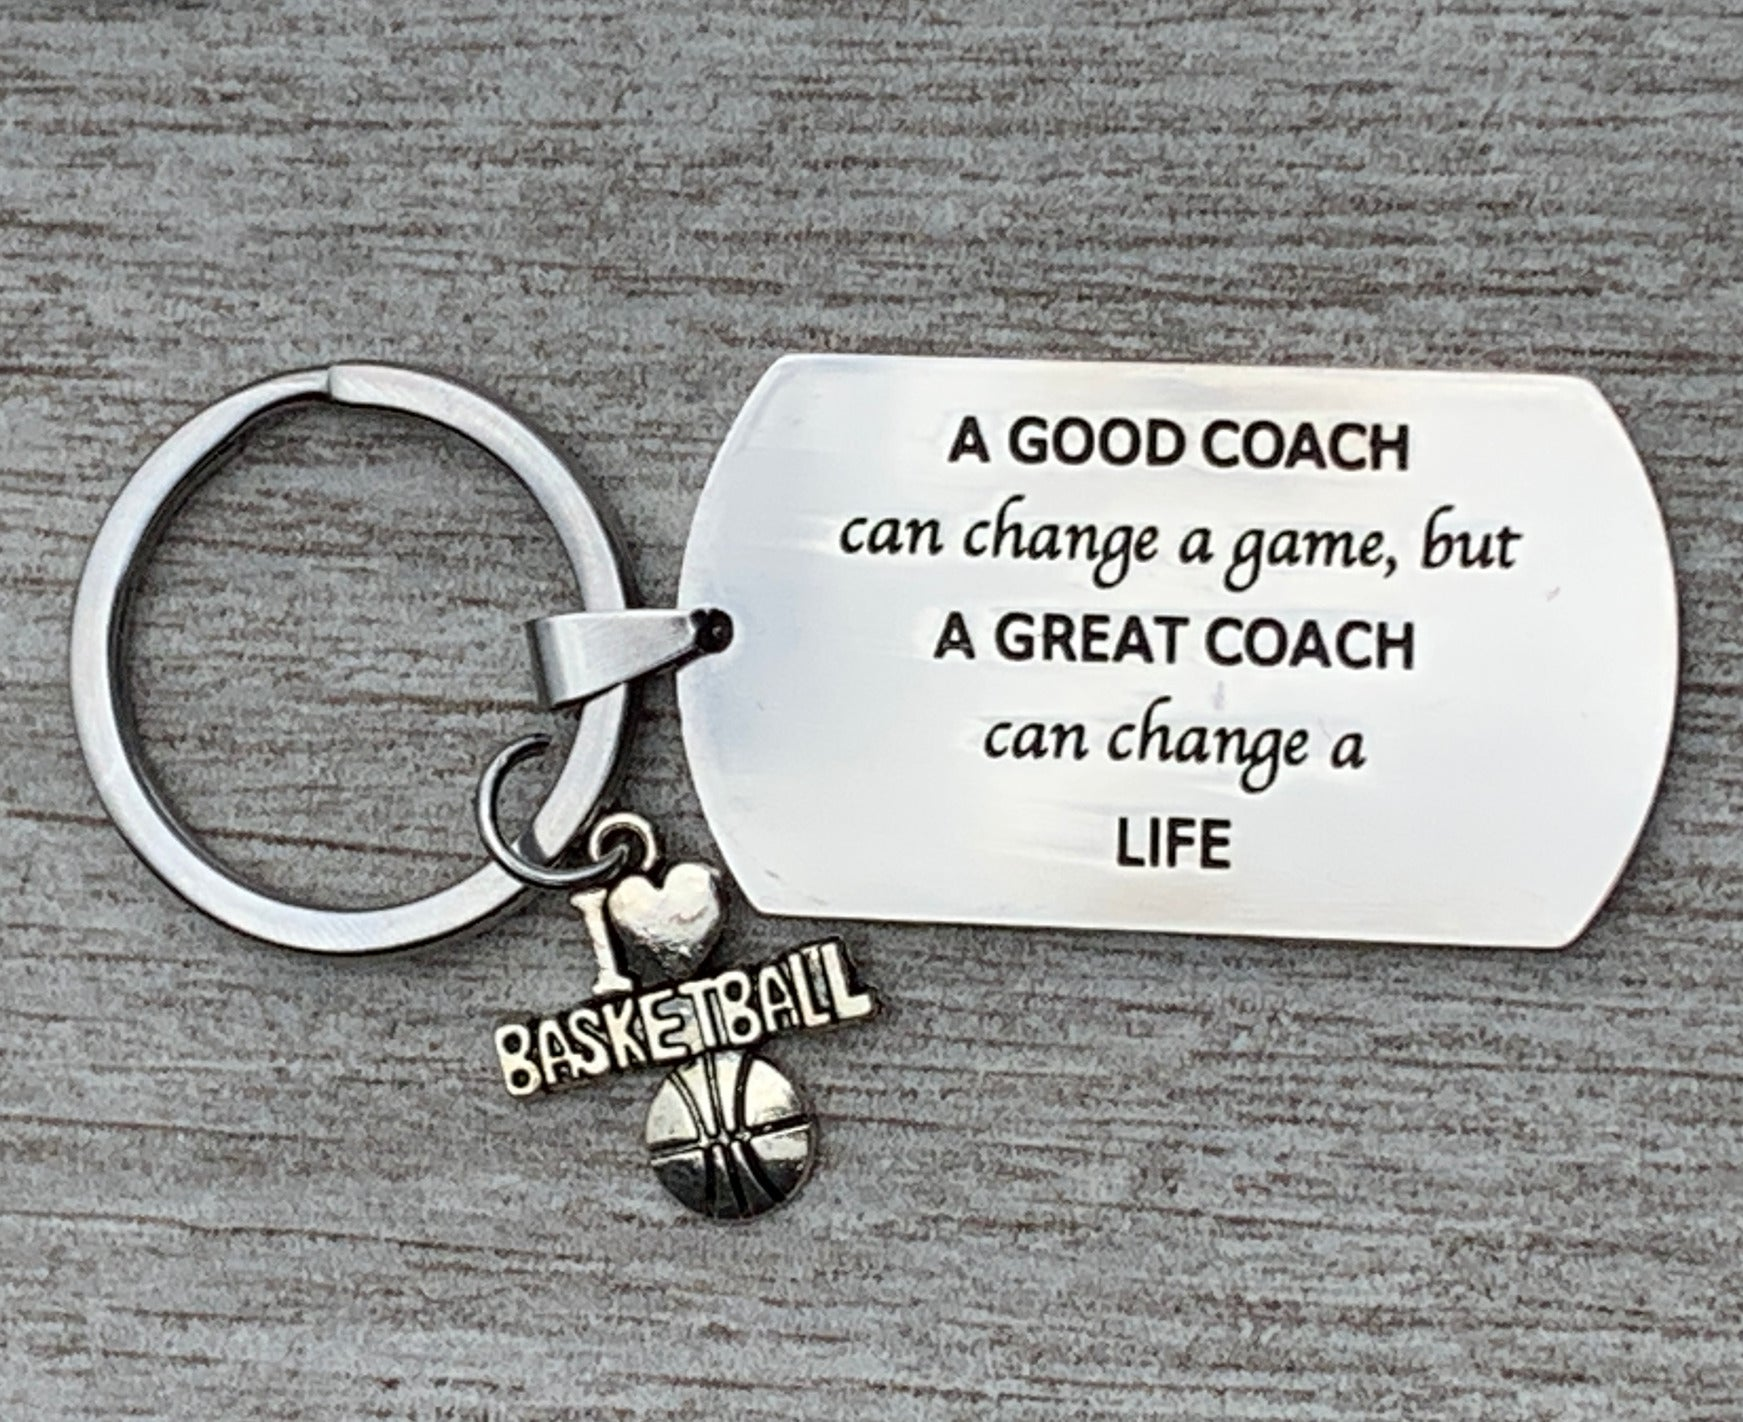 Sportybella Field Hockey Coach Keychain Field Hockey Coach Gifts A Good Coach Can Change a Game But a Great Coach Can Change a Life Stainless Steel Keychain